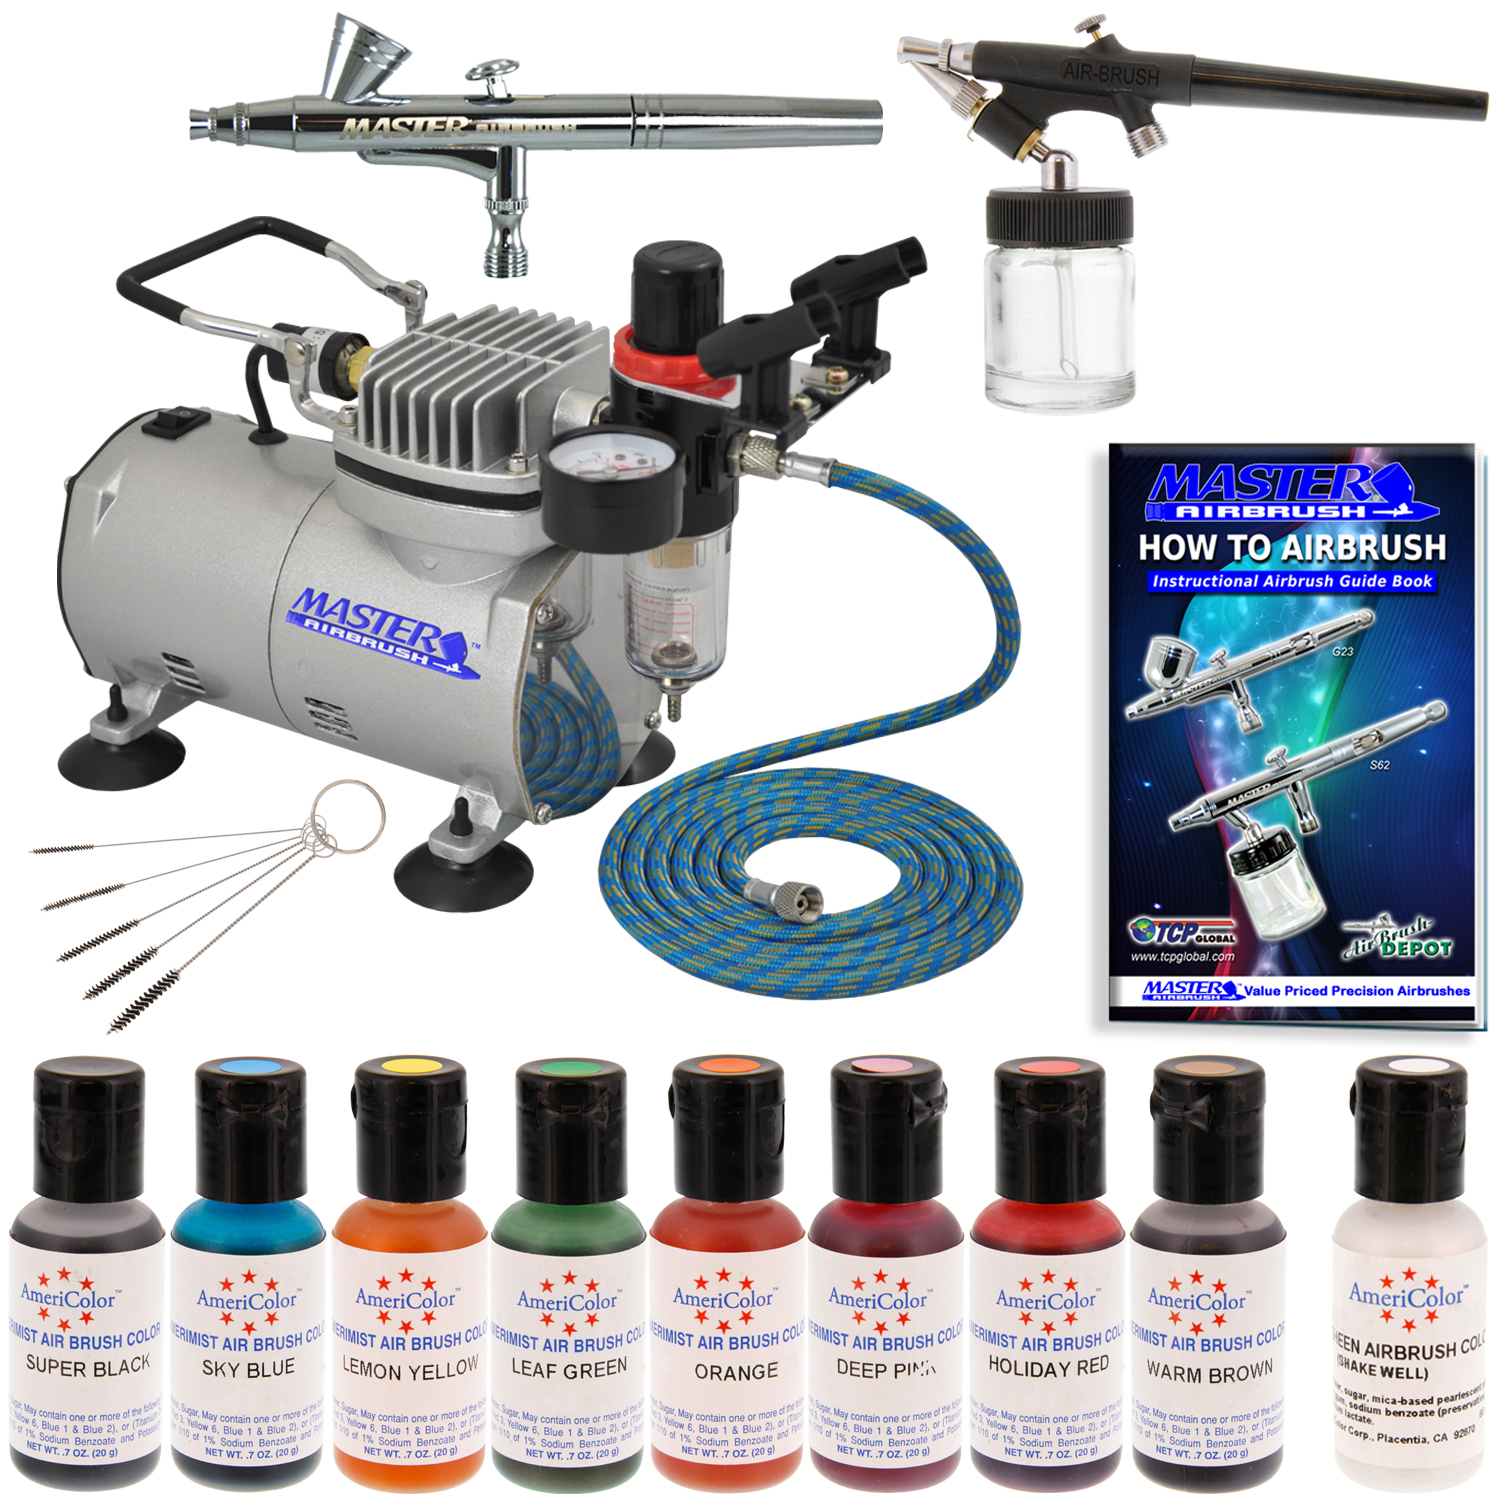 Airbrush For Cake Decorating : 2 Airbrush Cake Decorating Kit Compressor 12 Color Air ...